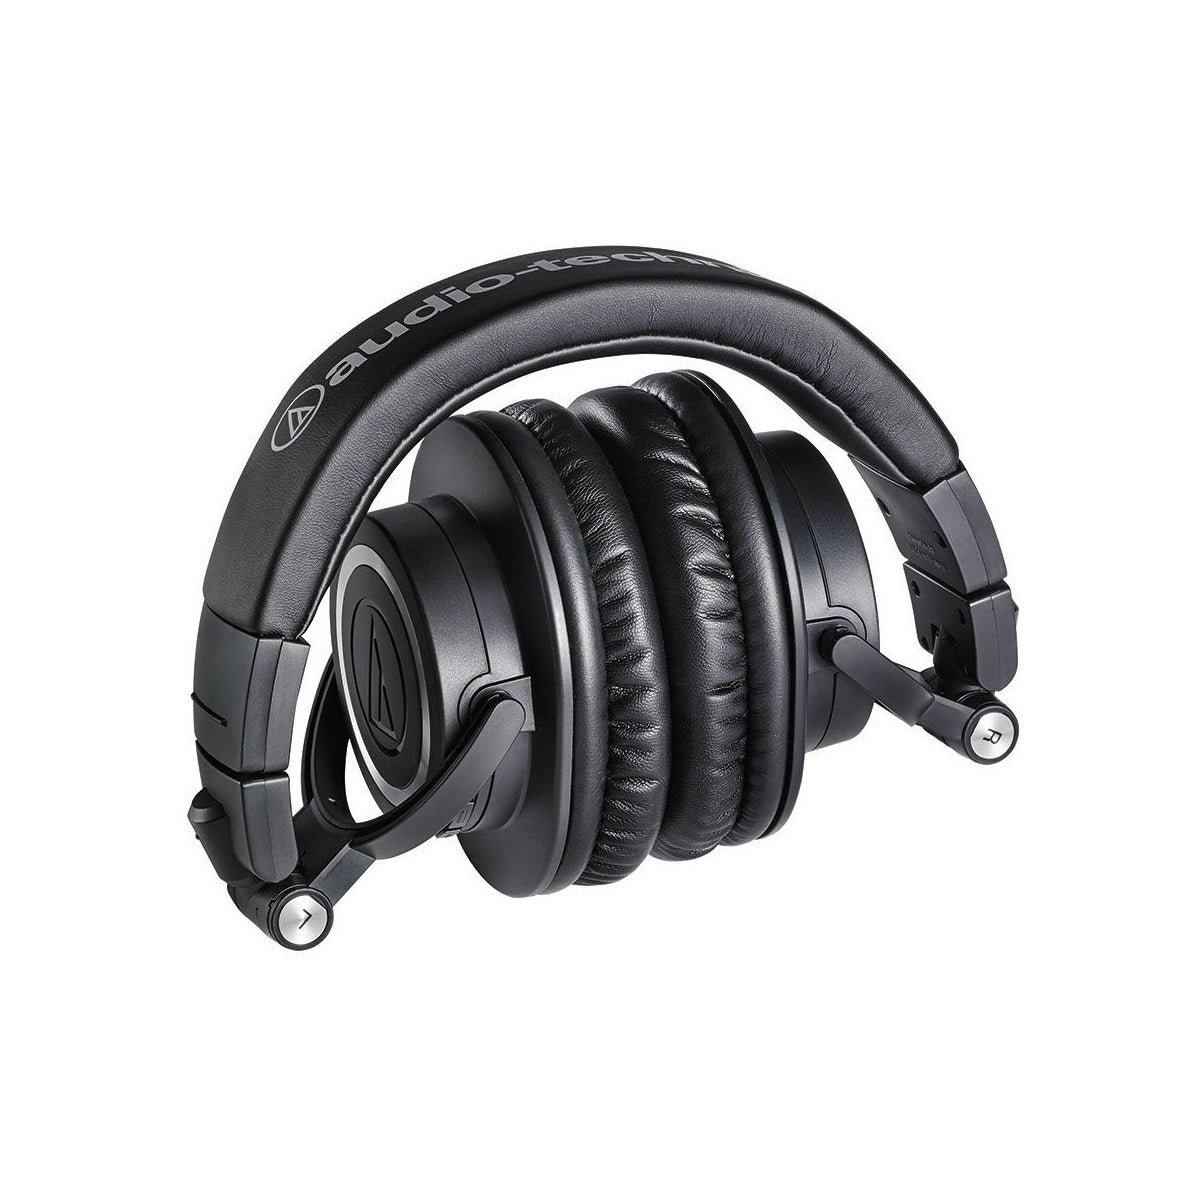 ATH-M50xBT - Jaben - The Little Headphone Store